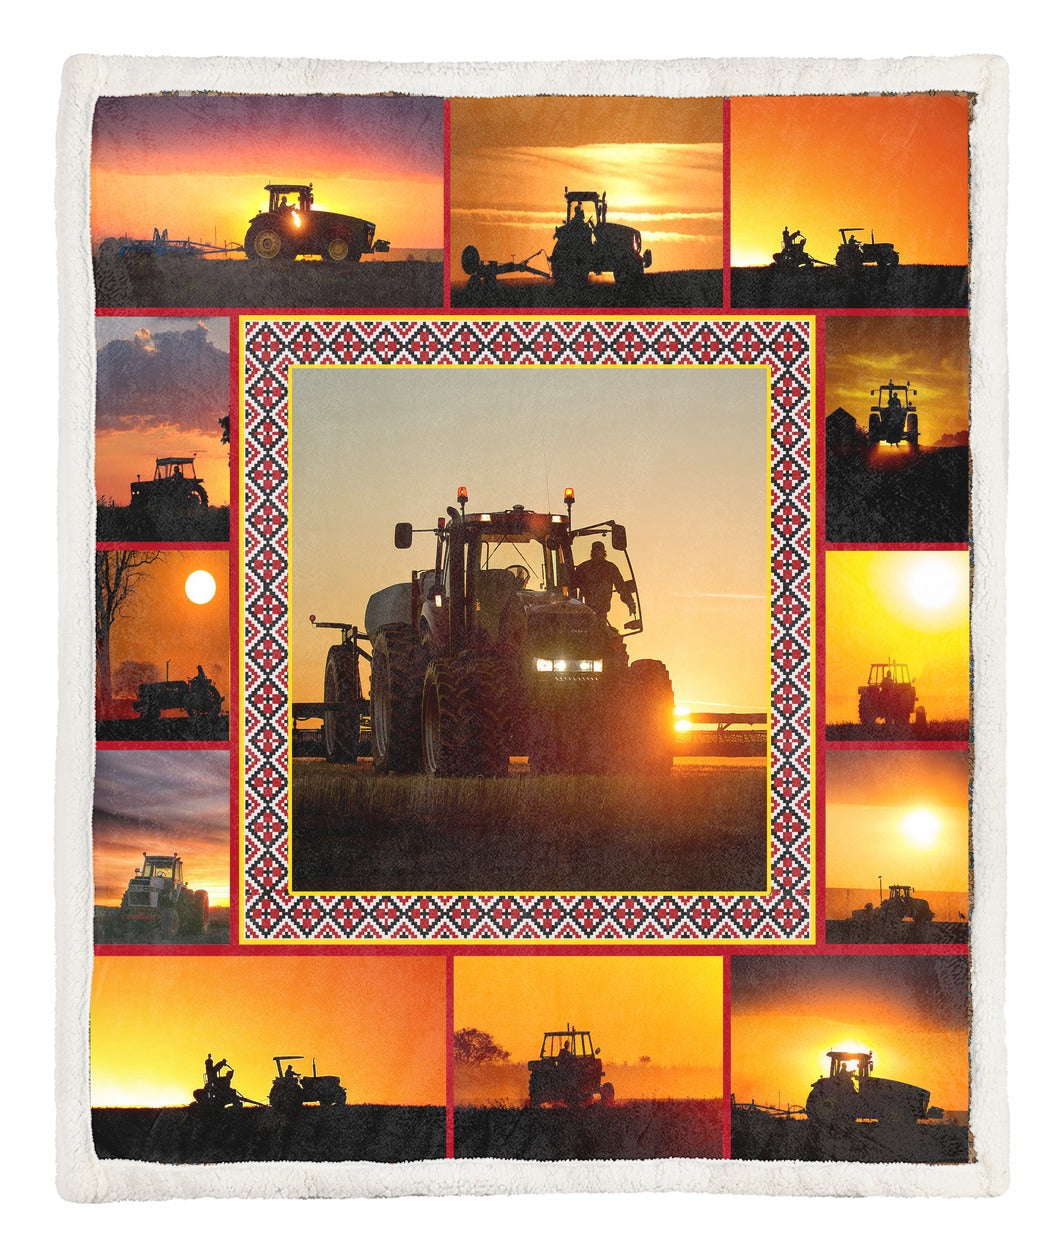 tractor-throw-blanket-tabtvh16101221